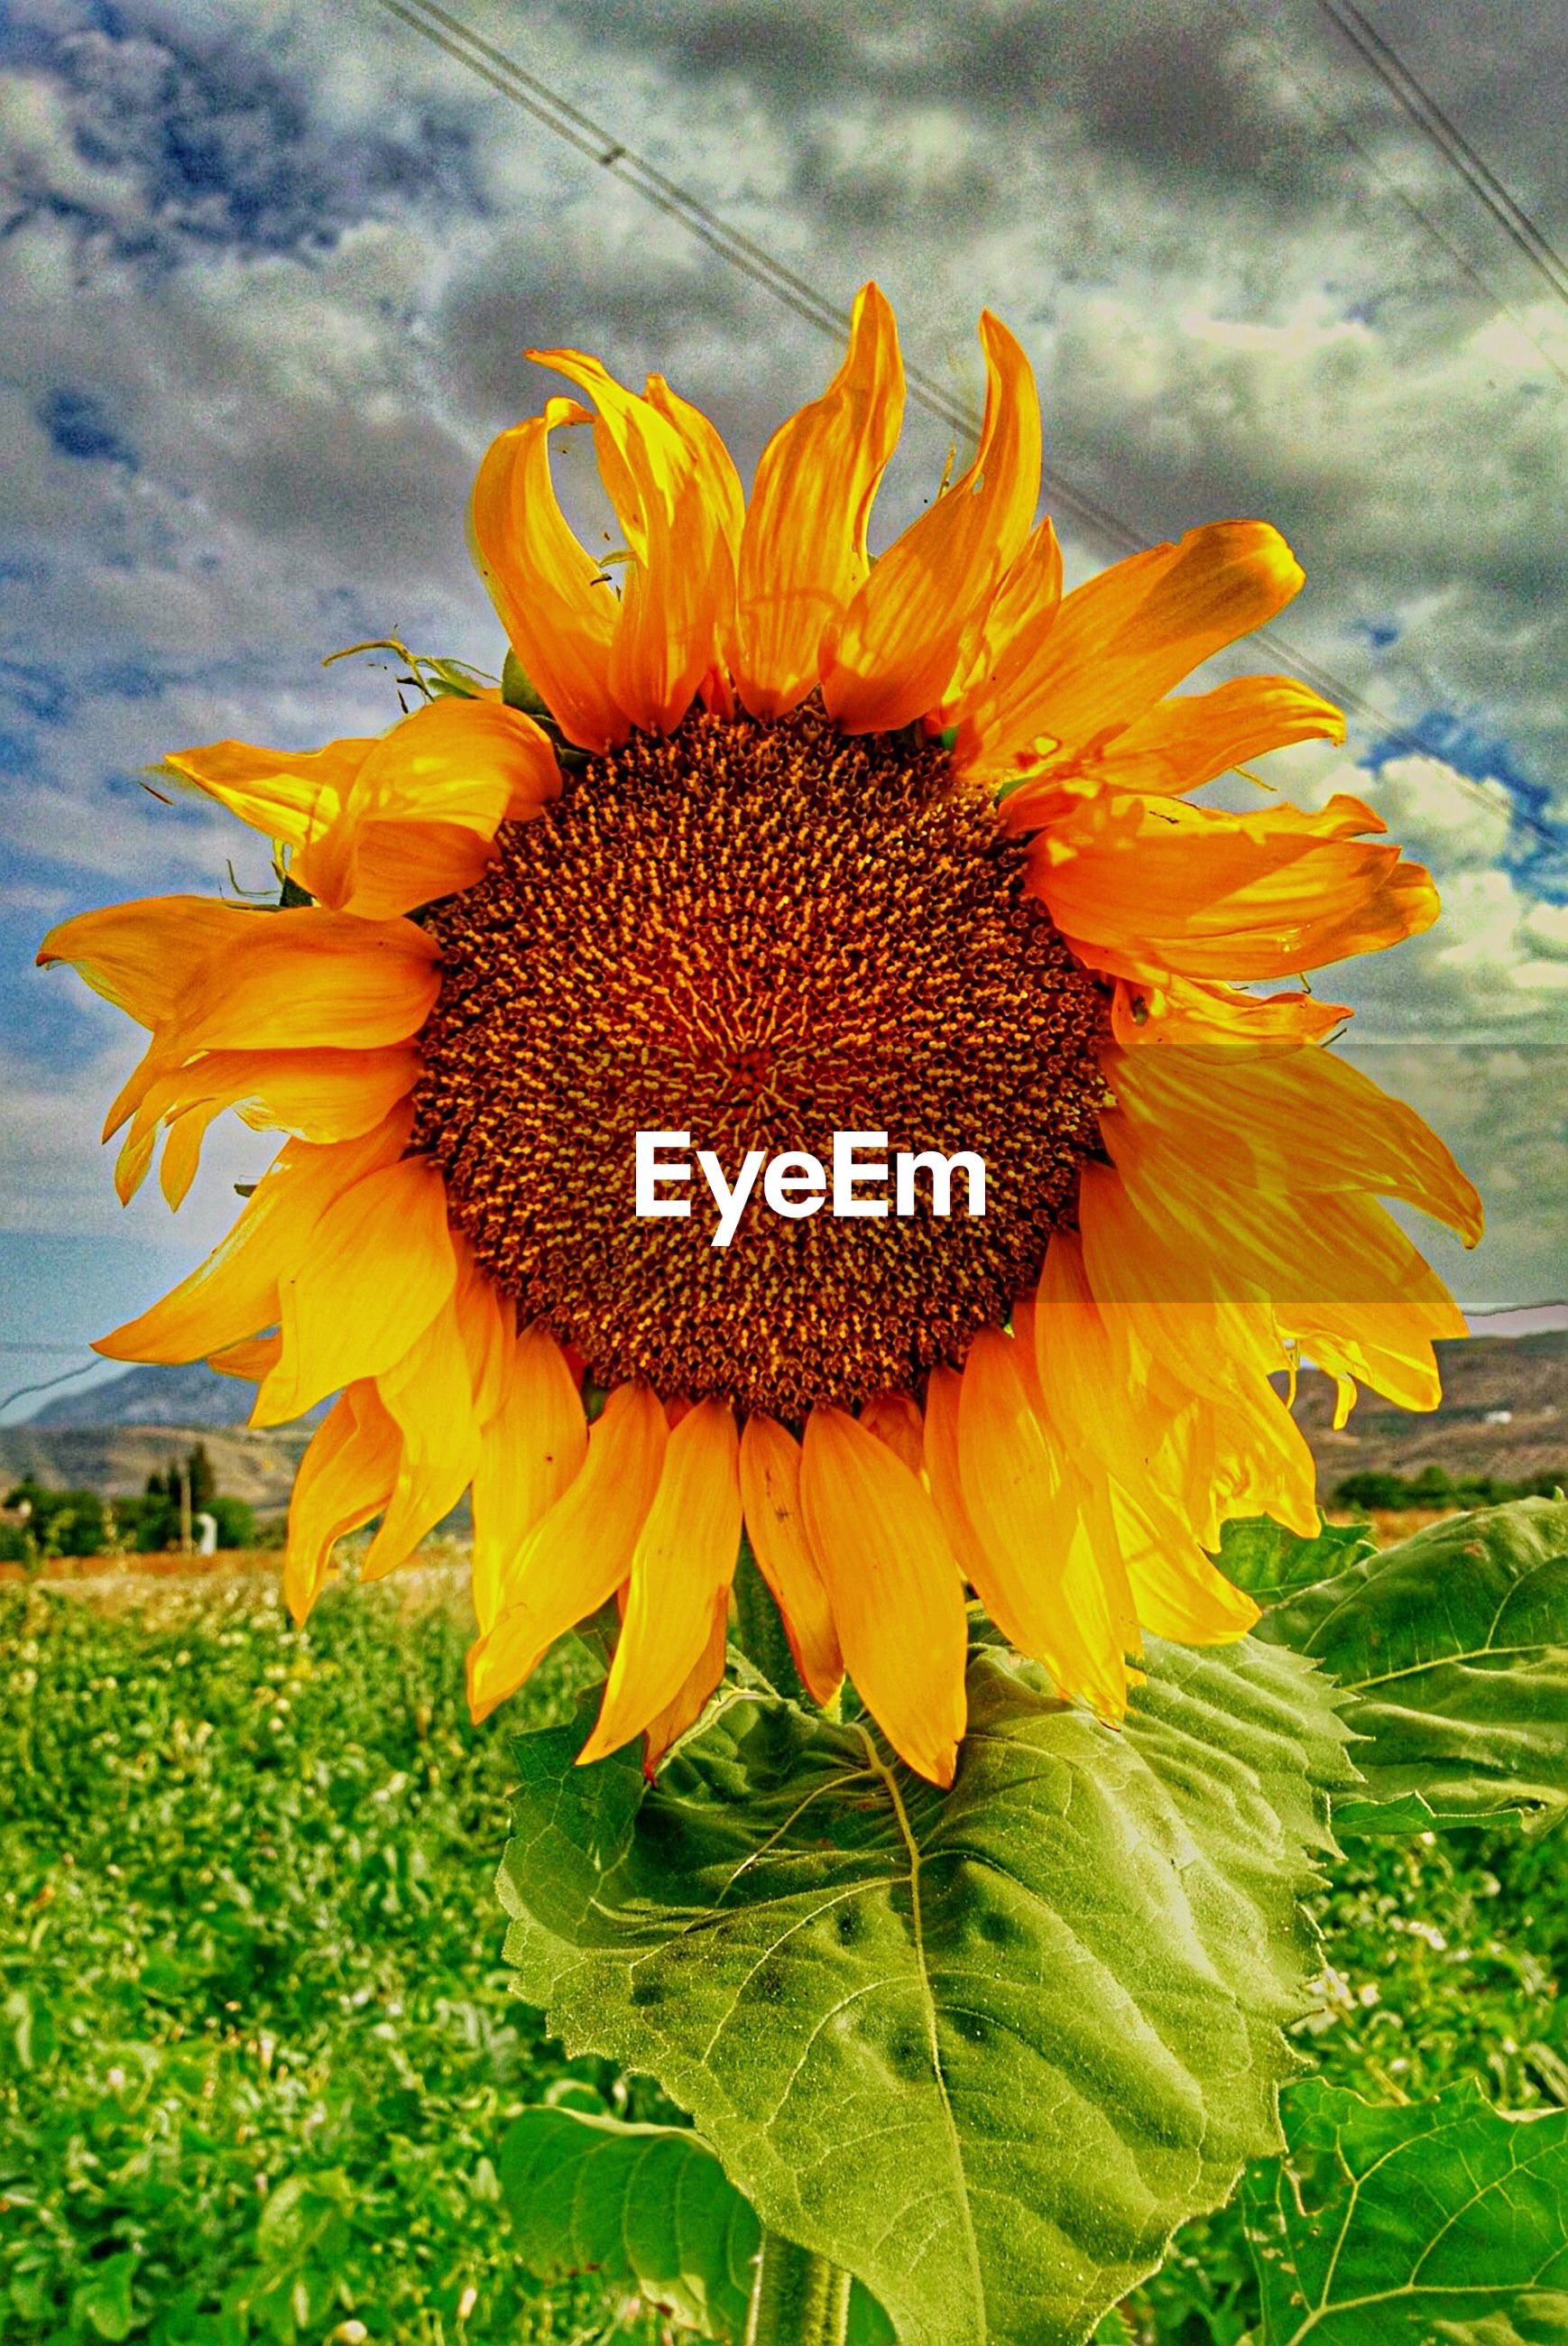 Close-up of sunflower blooming on field against cloudy sky